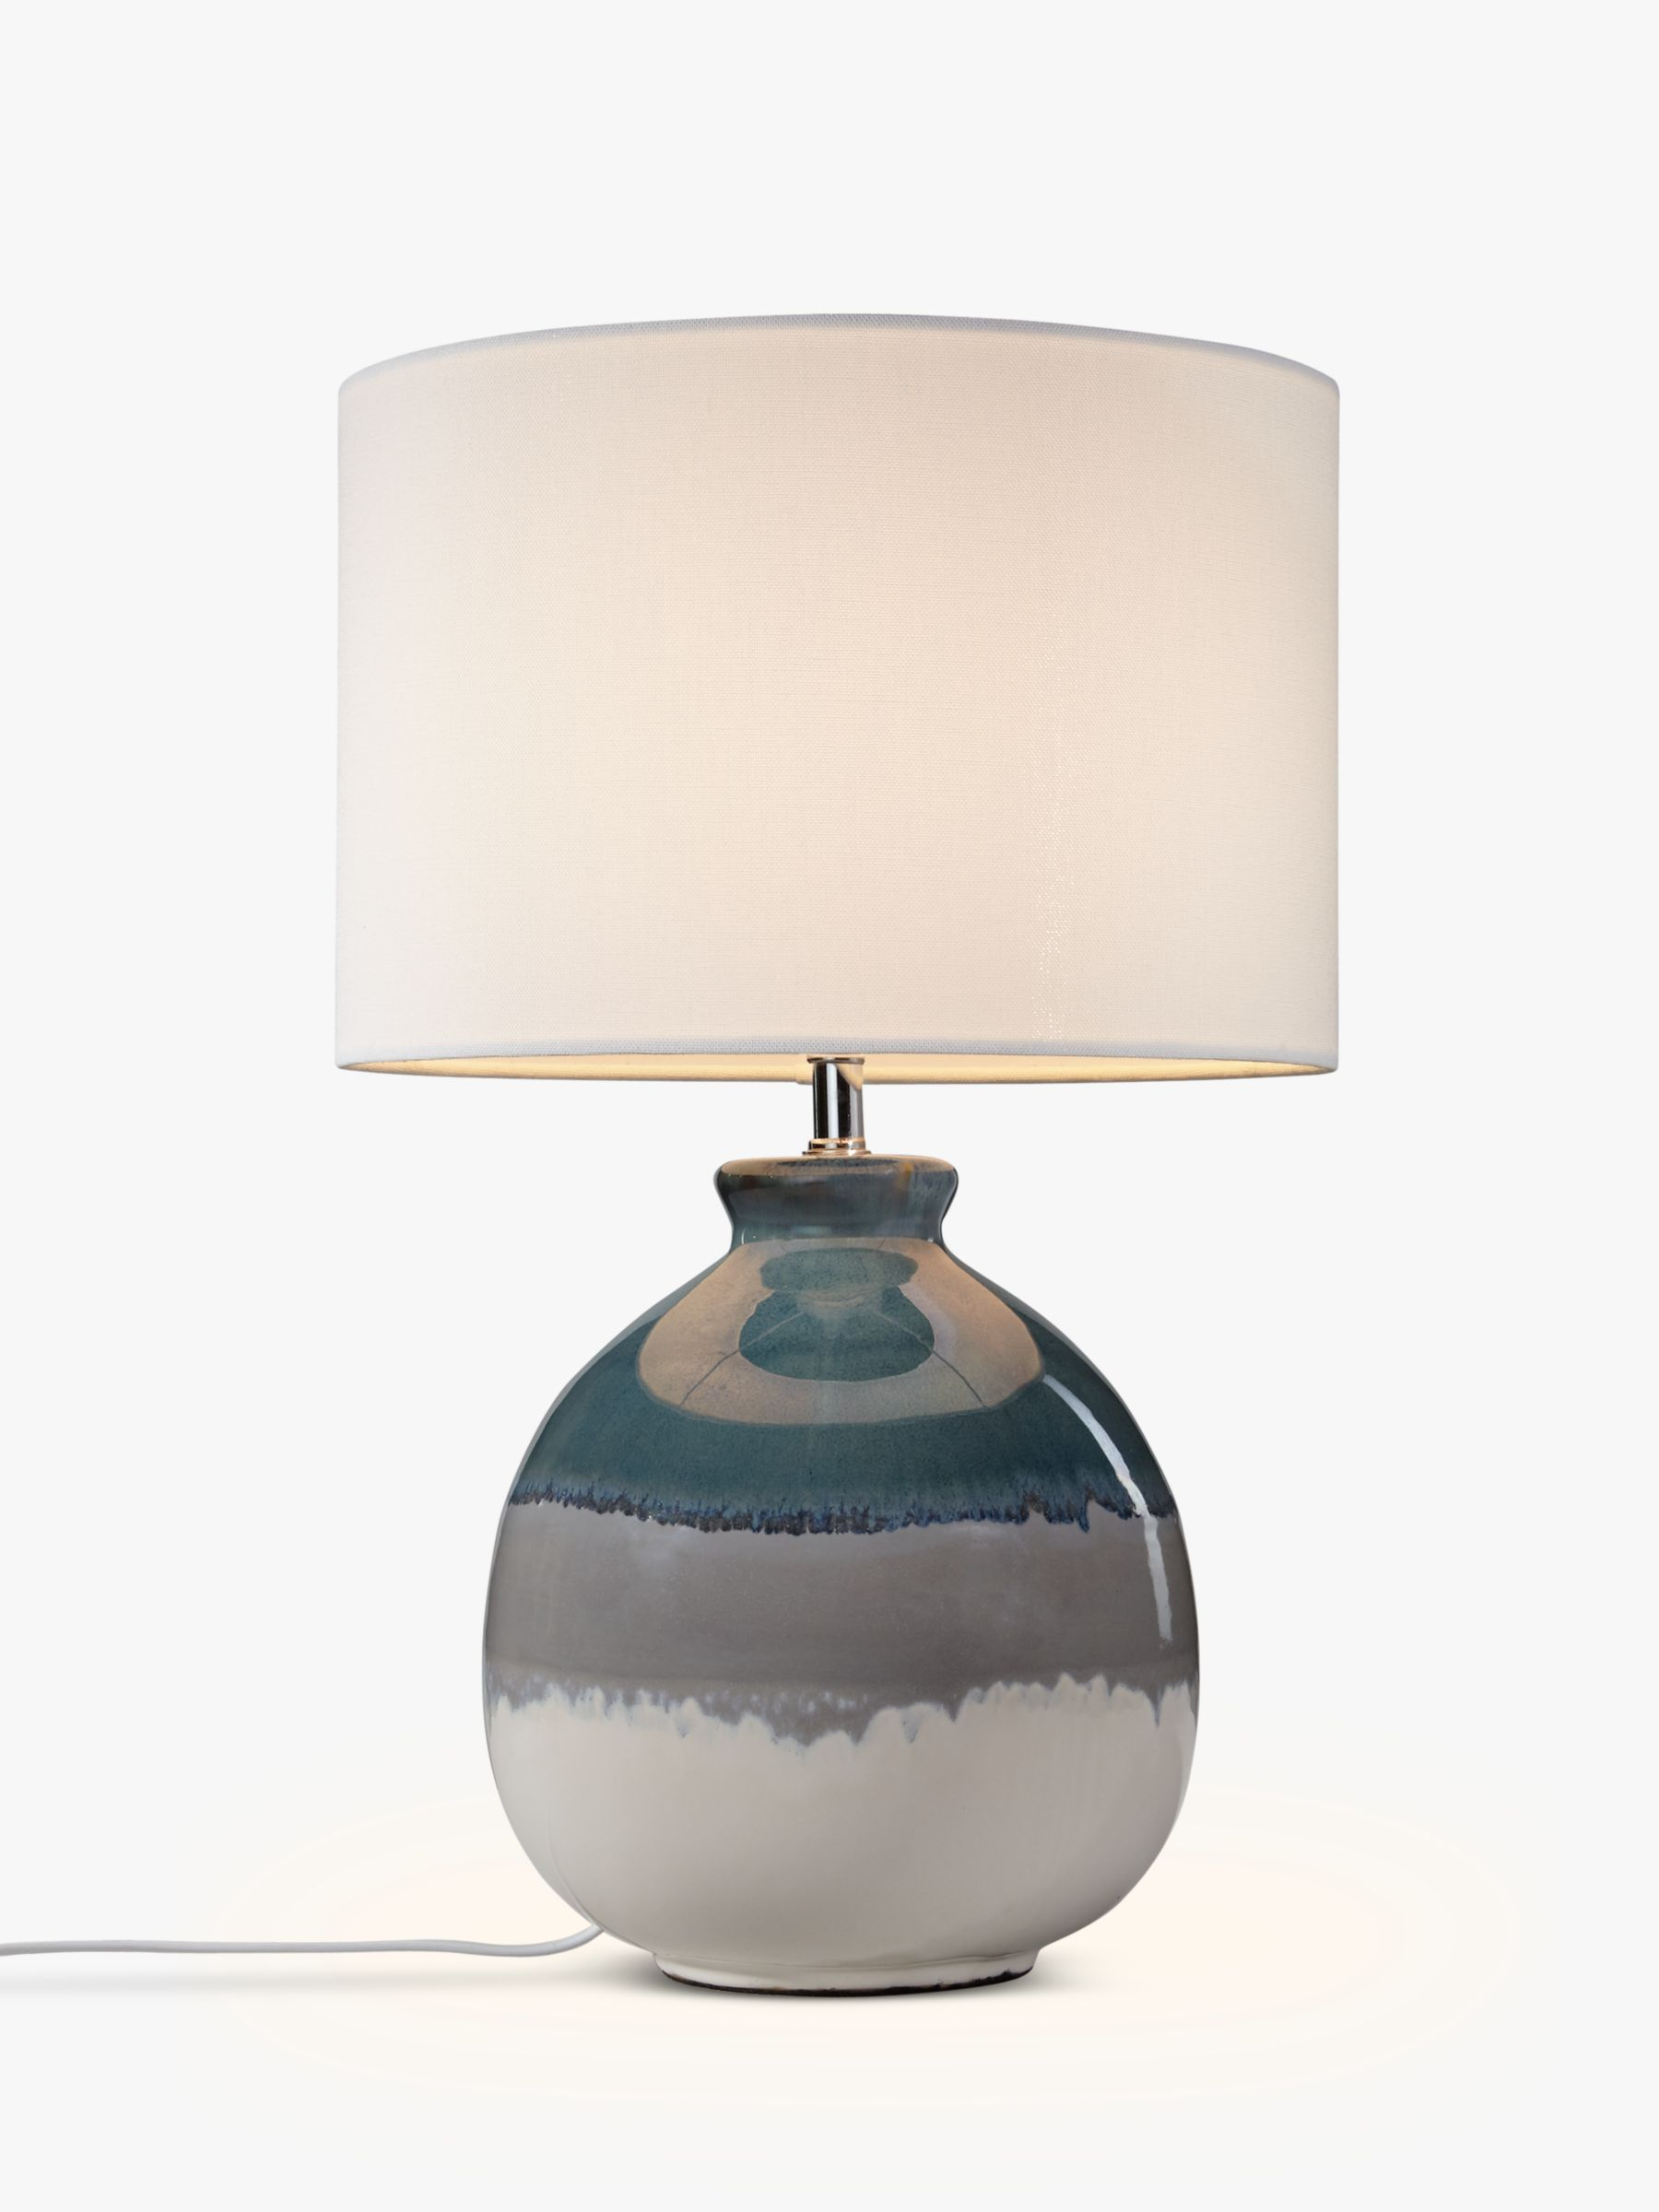 John lewis applause light box table lamp compare bluewater geotapseo Image collections